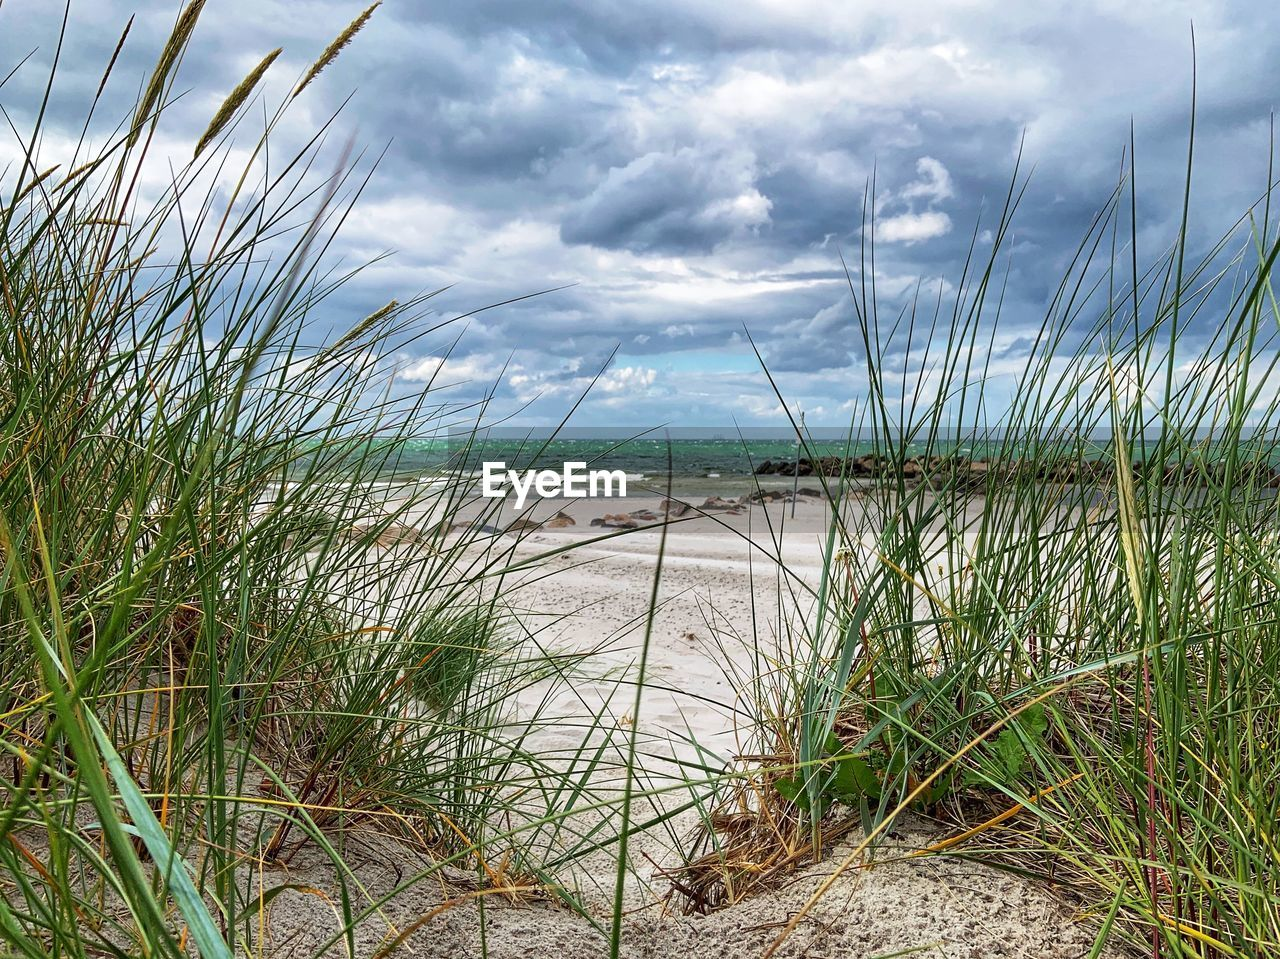 cloud - sky, sky, water, plant, grass, sea, beauty in nature, tranquility, beach, nature, growth, scenics - nature, land, day, tranquil scene, no people, horizon over water, green color, sand, marram grass, outdoors, timothy grass